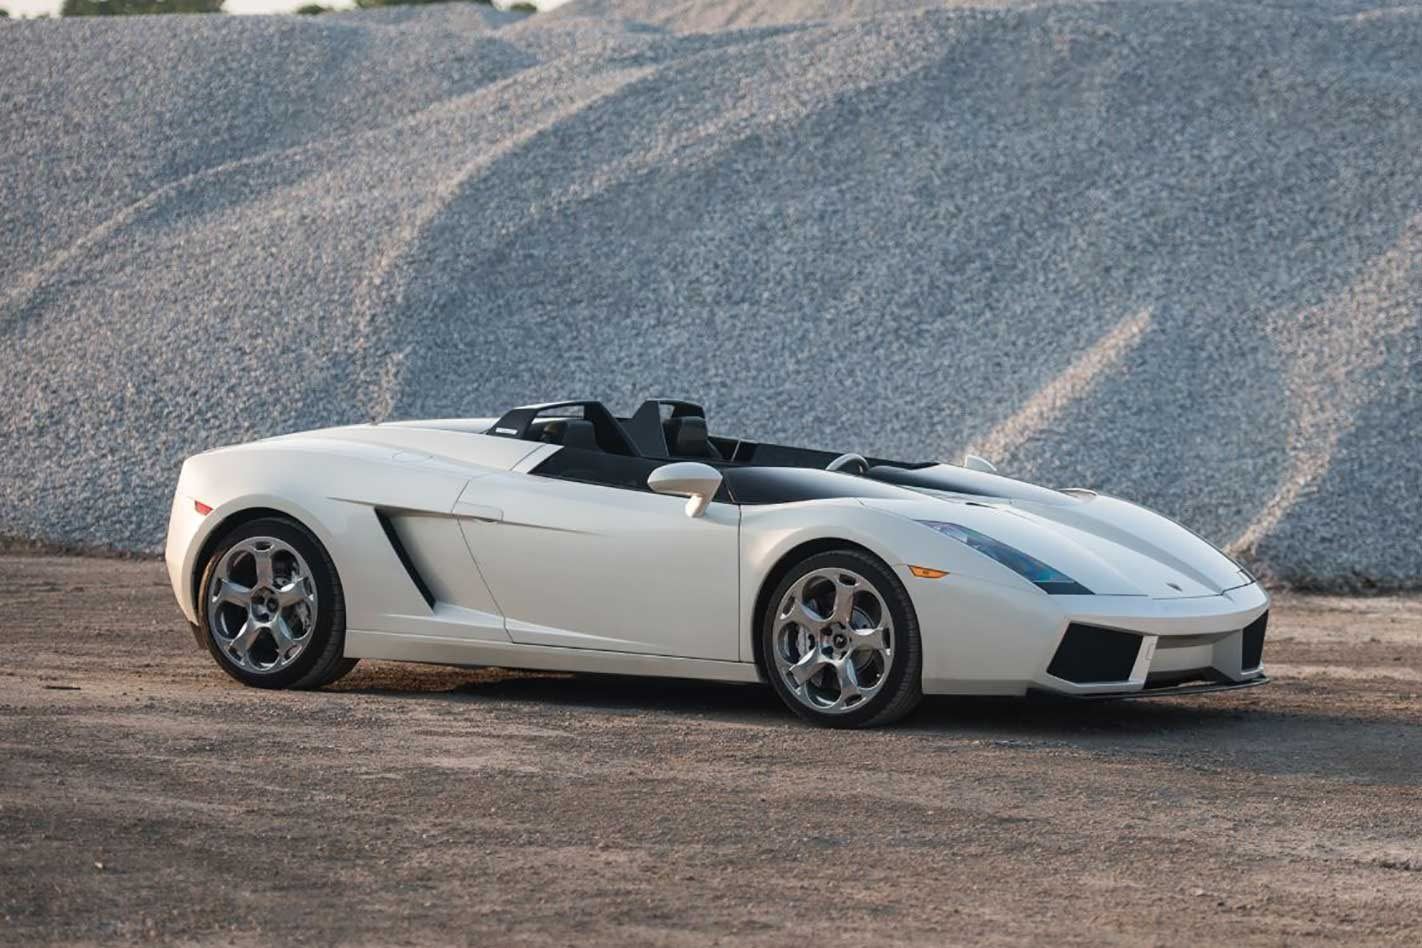 RM Sotheby's Abu Dhabi Auction Results